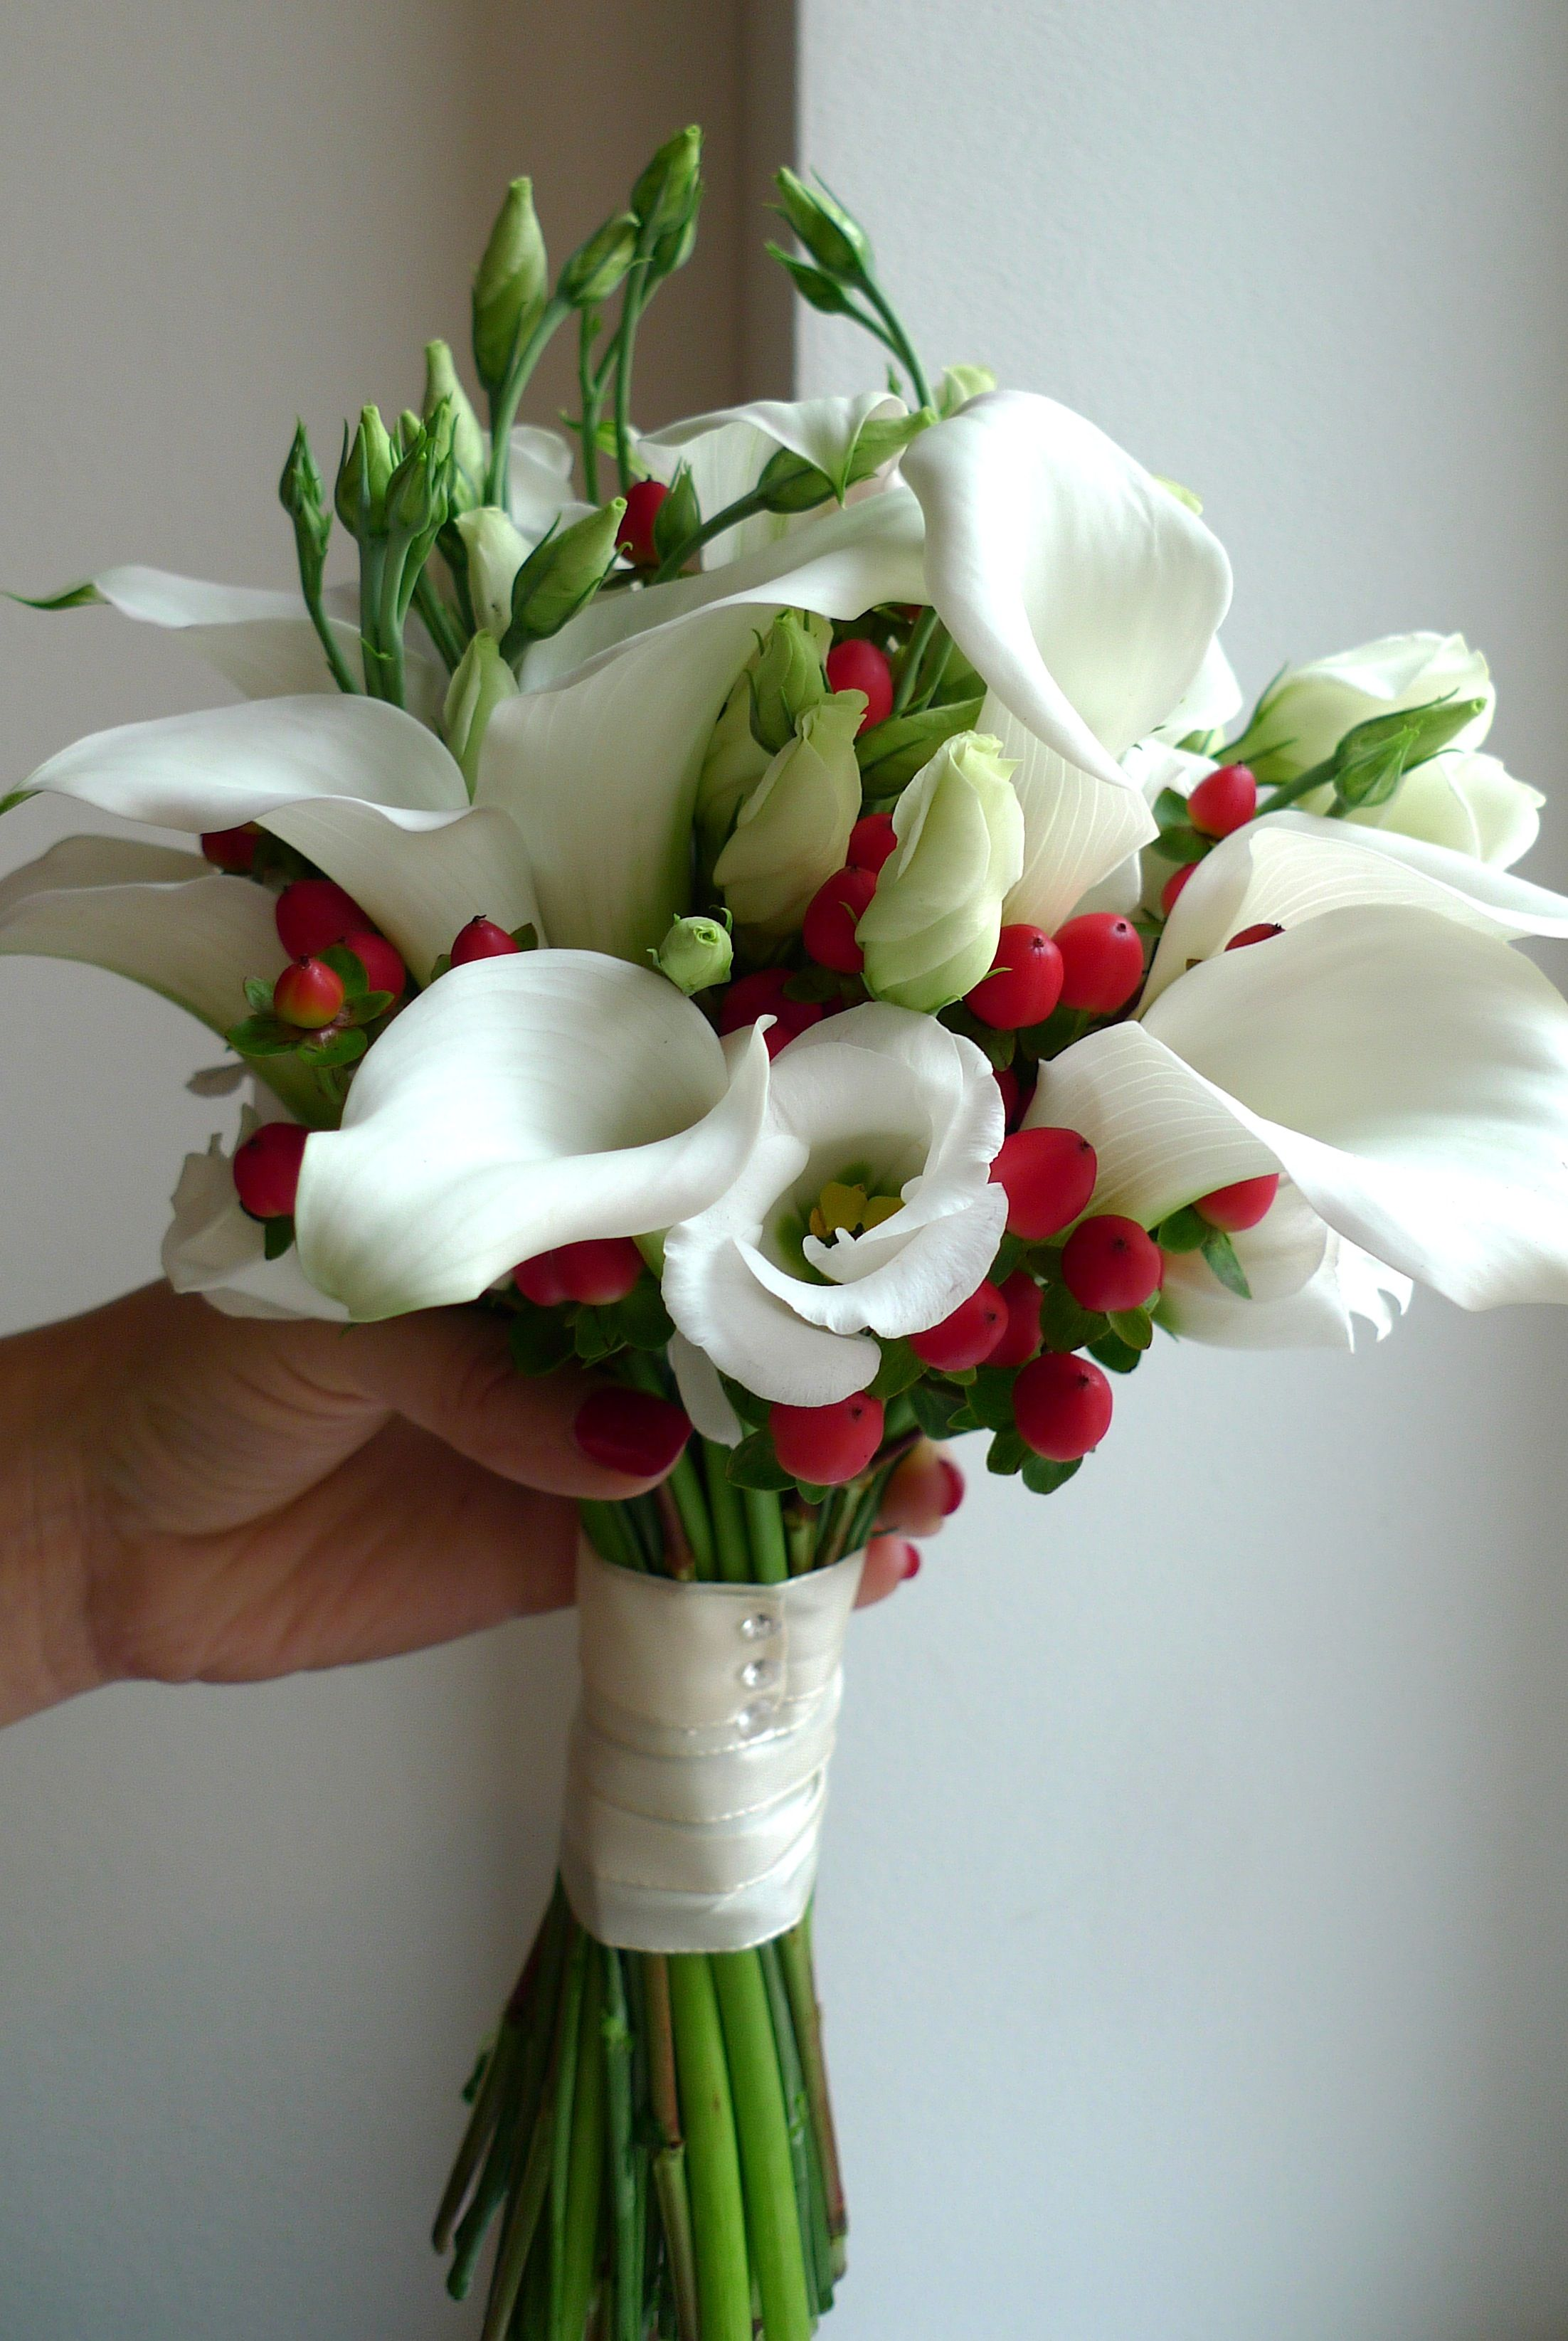 Pin by The Flower Shop on Church / Civil flowers (With